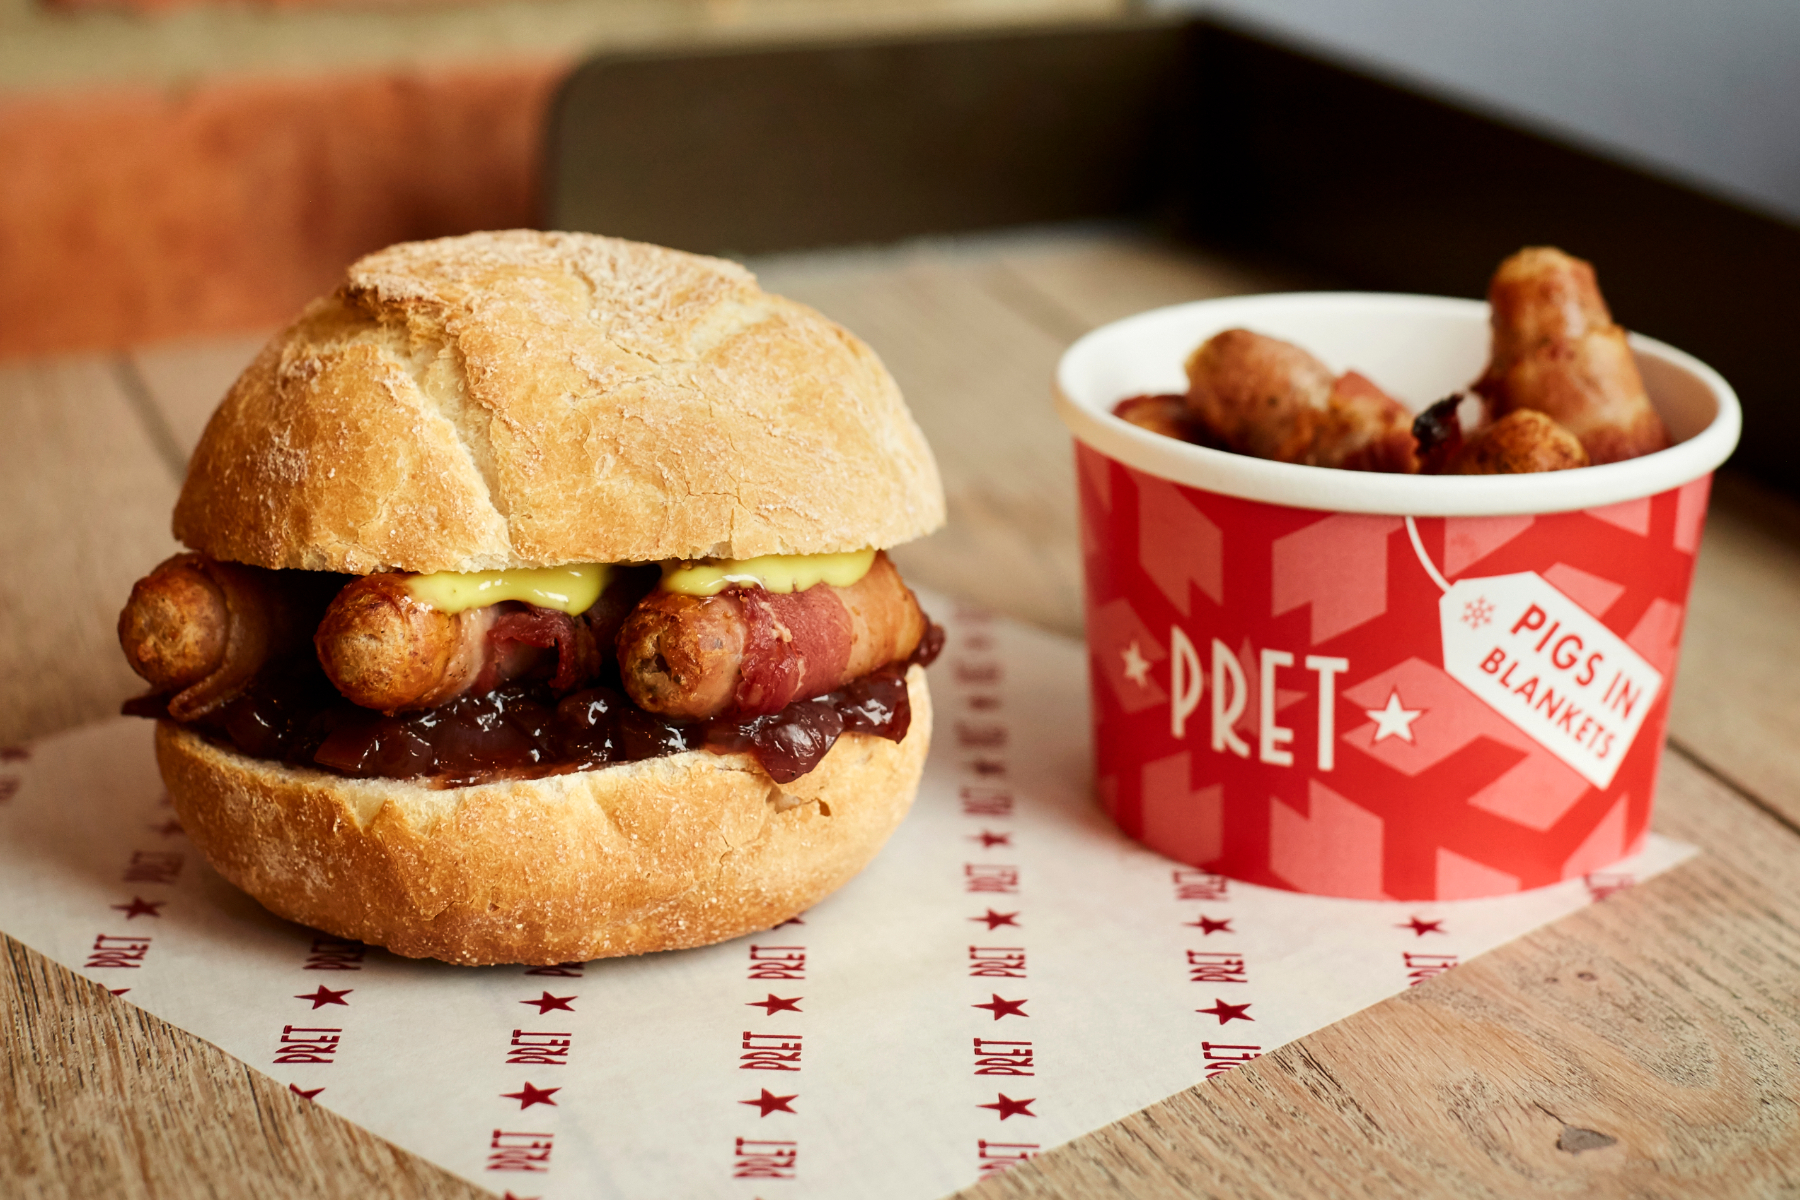 The sandwich chain has introduced pigs in blankets to their 2020 Christmas menu.